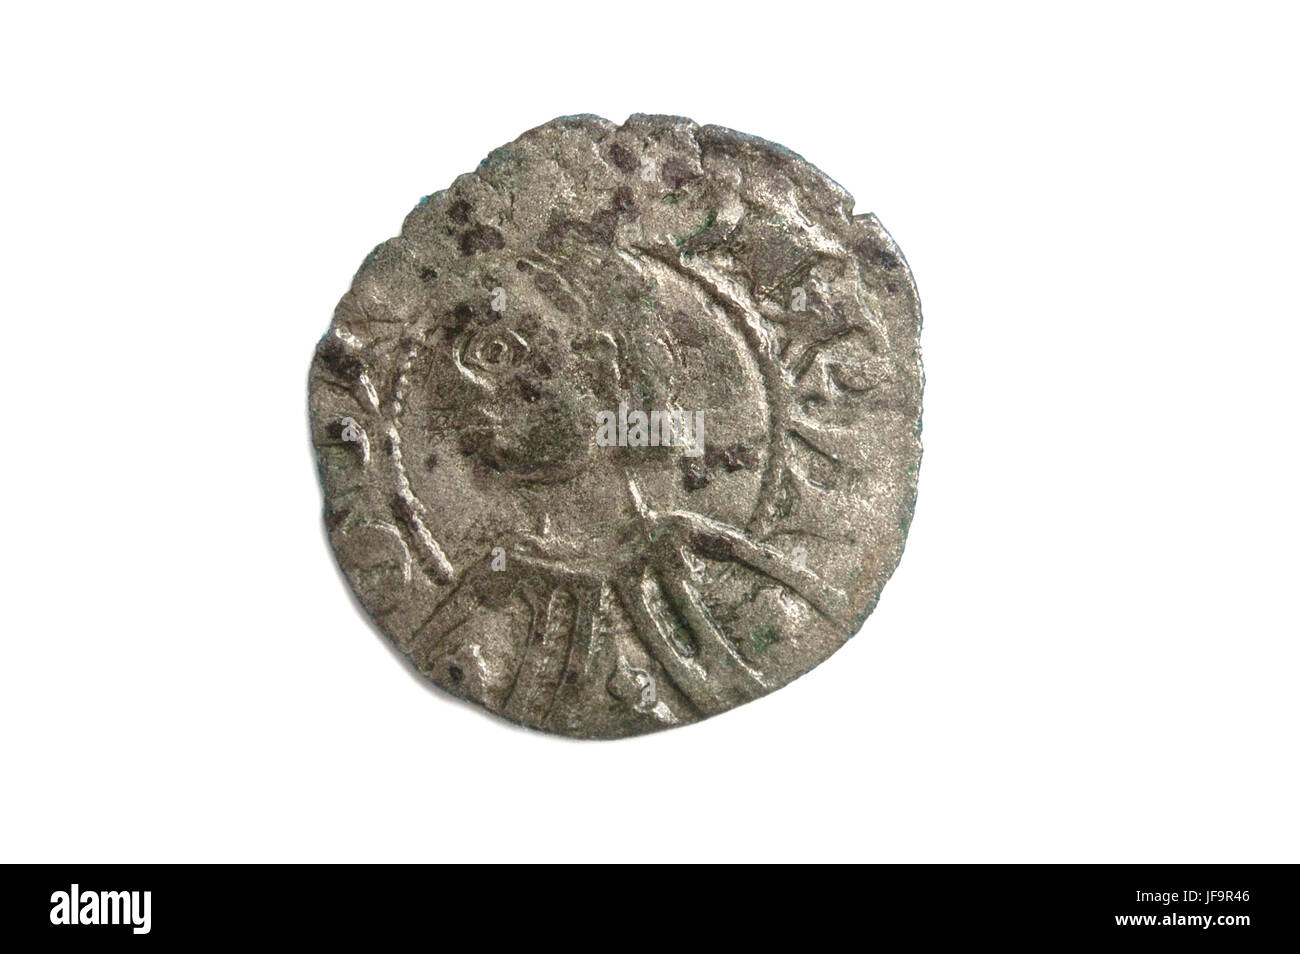 a Spanish medieval coin, king Pedro IV, dinero - Stock Image